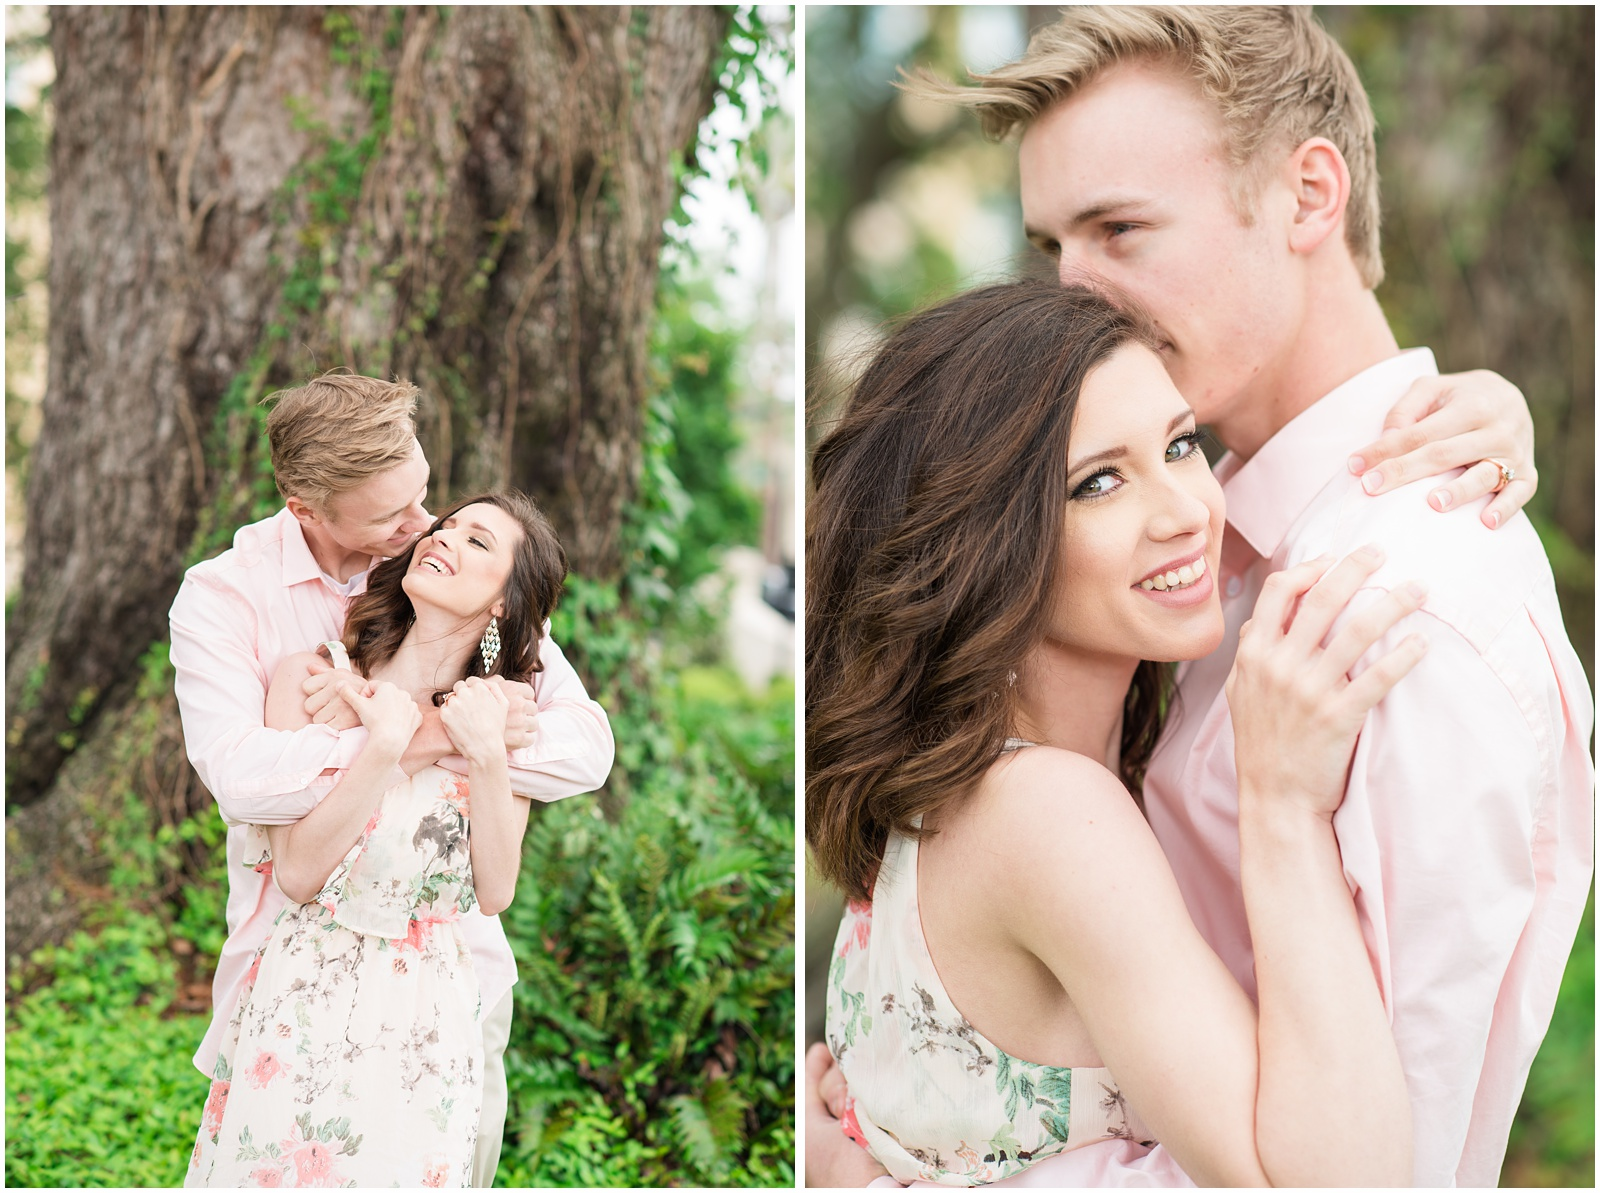 Jacksonville_Florida_Memorial Park_Engagement_Portraits_8.jpg